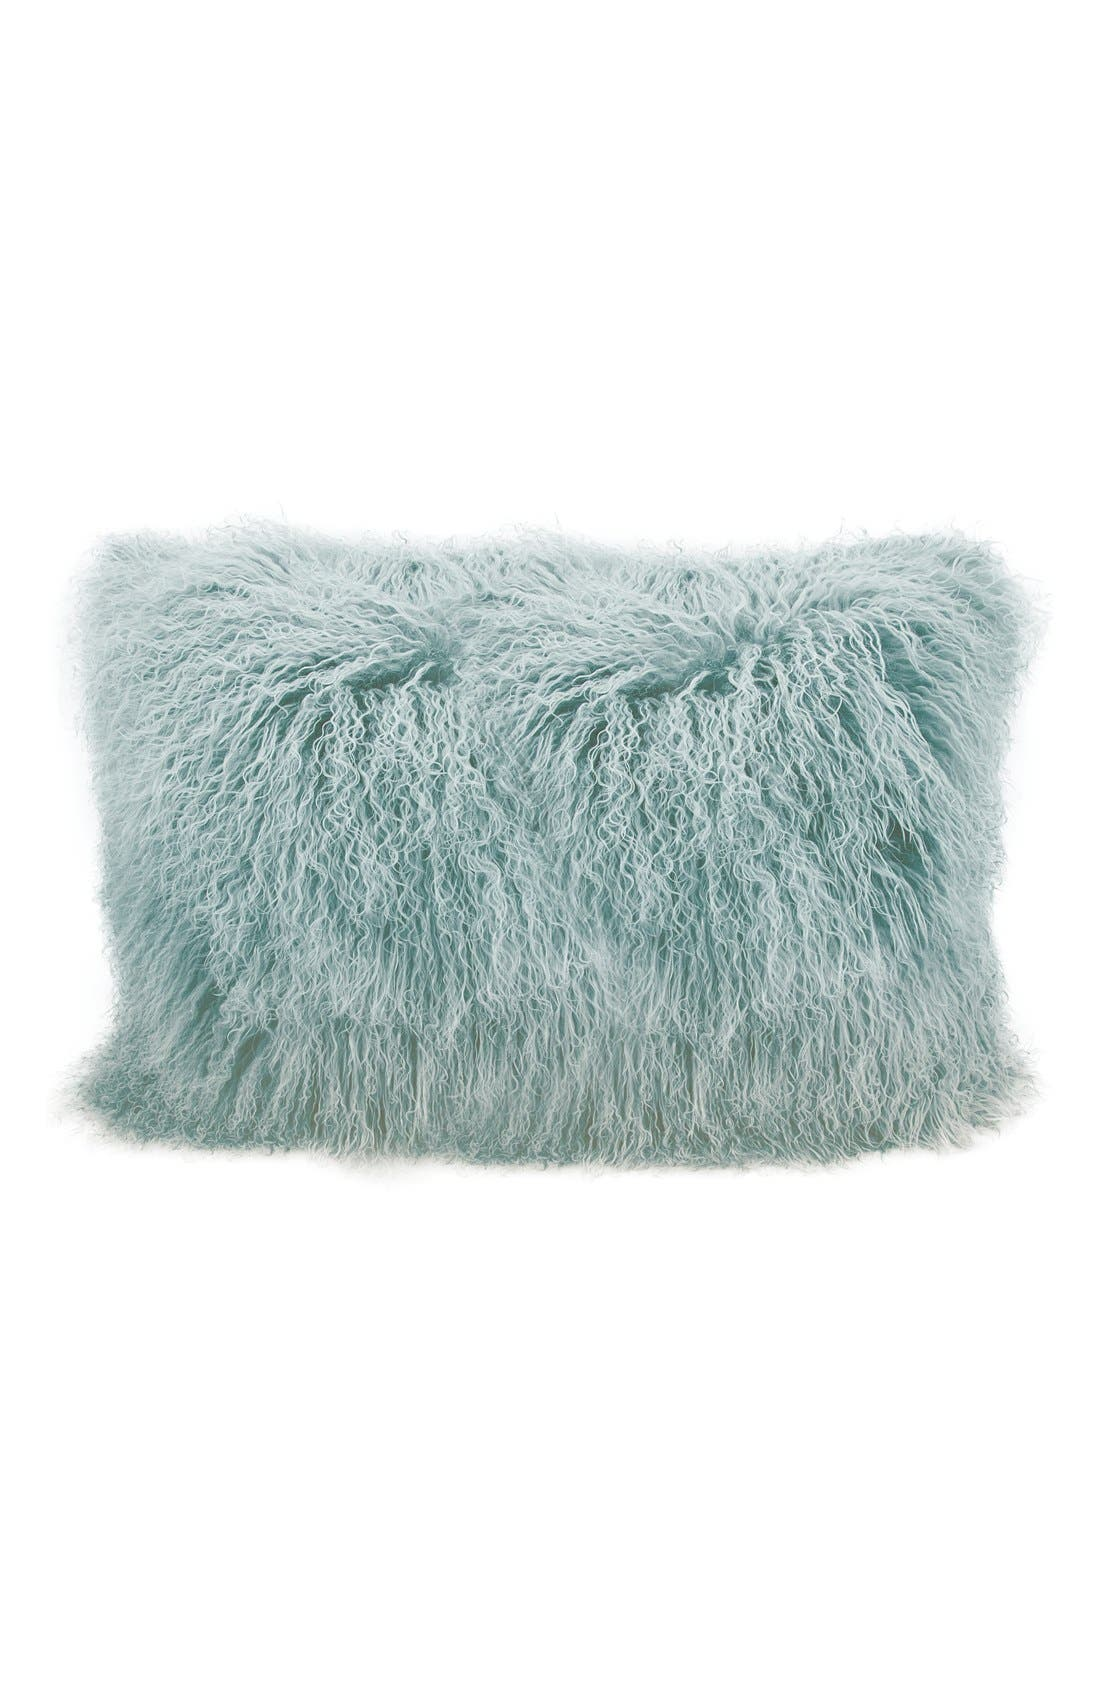 Main Image - Mina Victory Genuine Tibetan Shearling Pillow